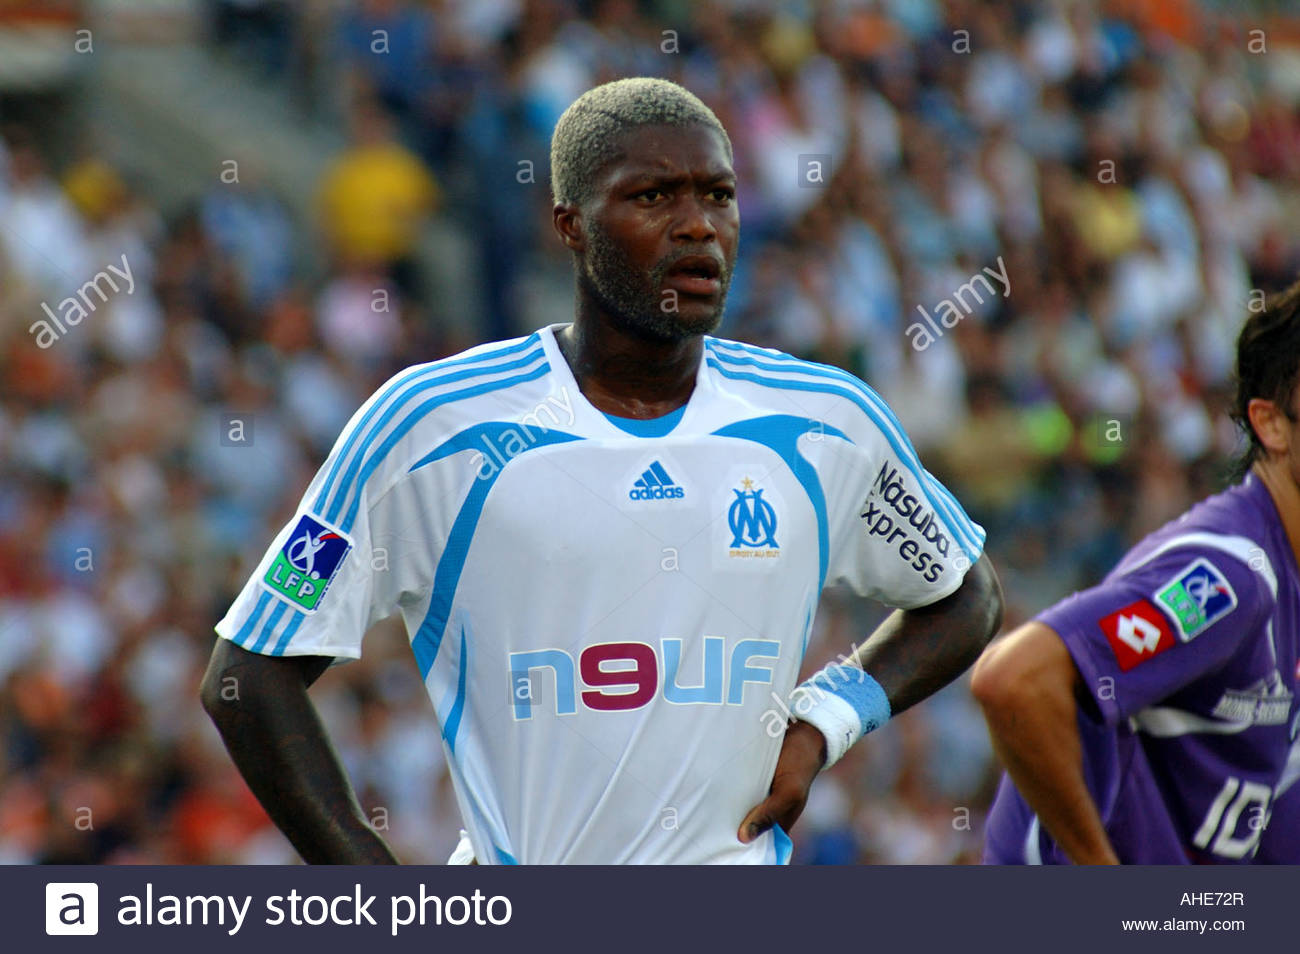 djibril cisse olympique de marseille stock photo royalty. Black Bedroom Furniture Sets. Home Design Ideas